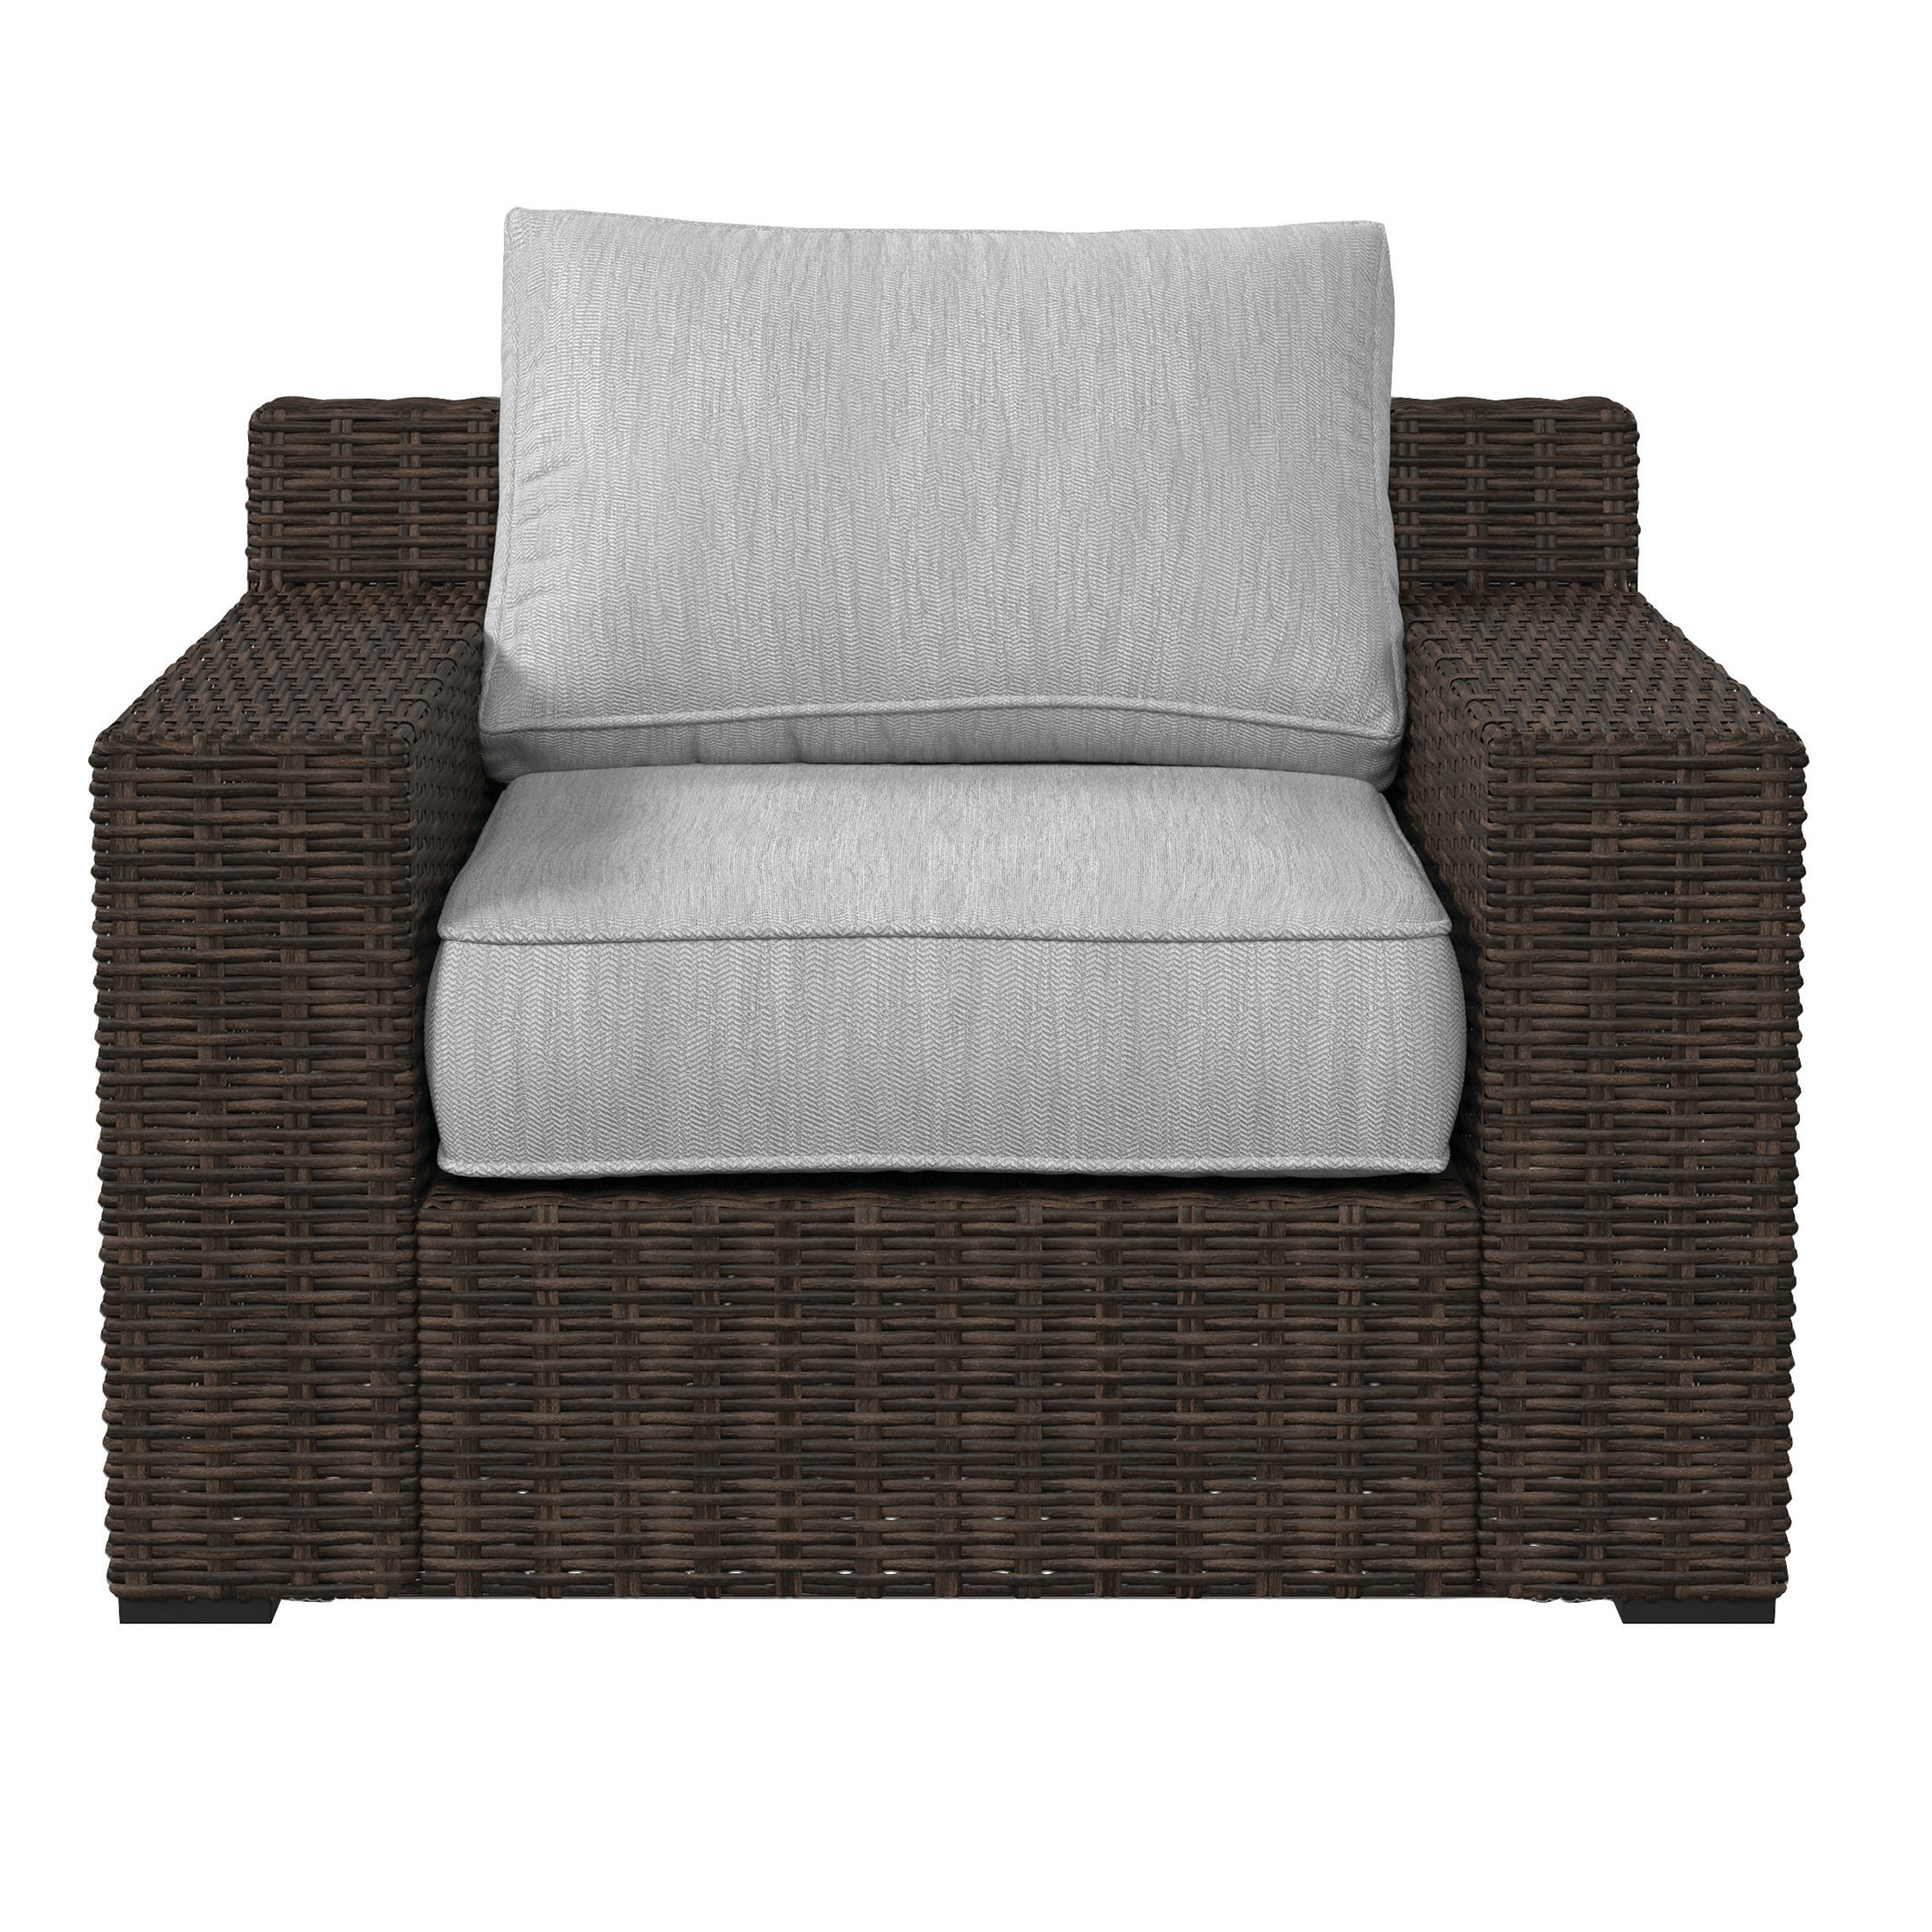 Oreland Patio Chair With Cushions Throughout Widely Used Oreland Patio Sofas With Cushions (View 9 of 20)